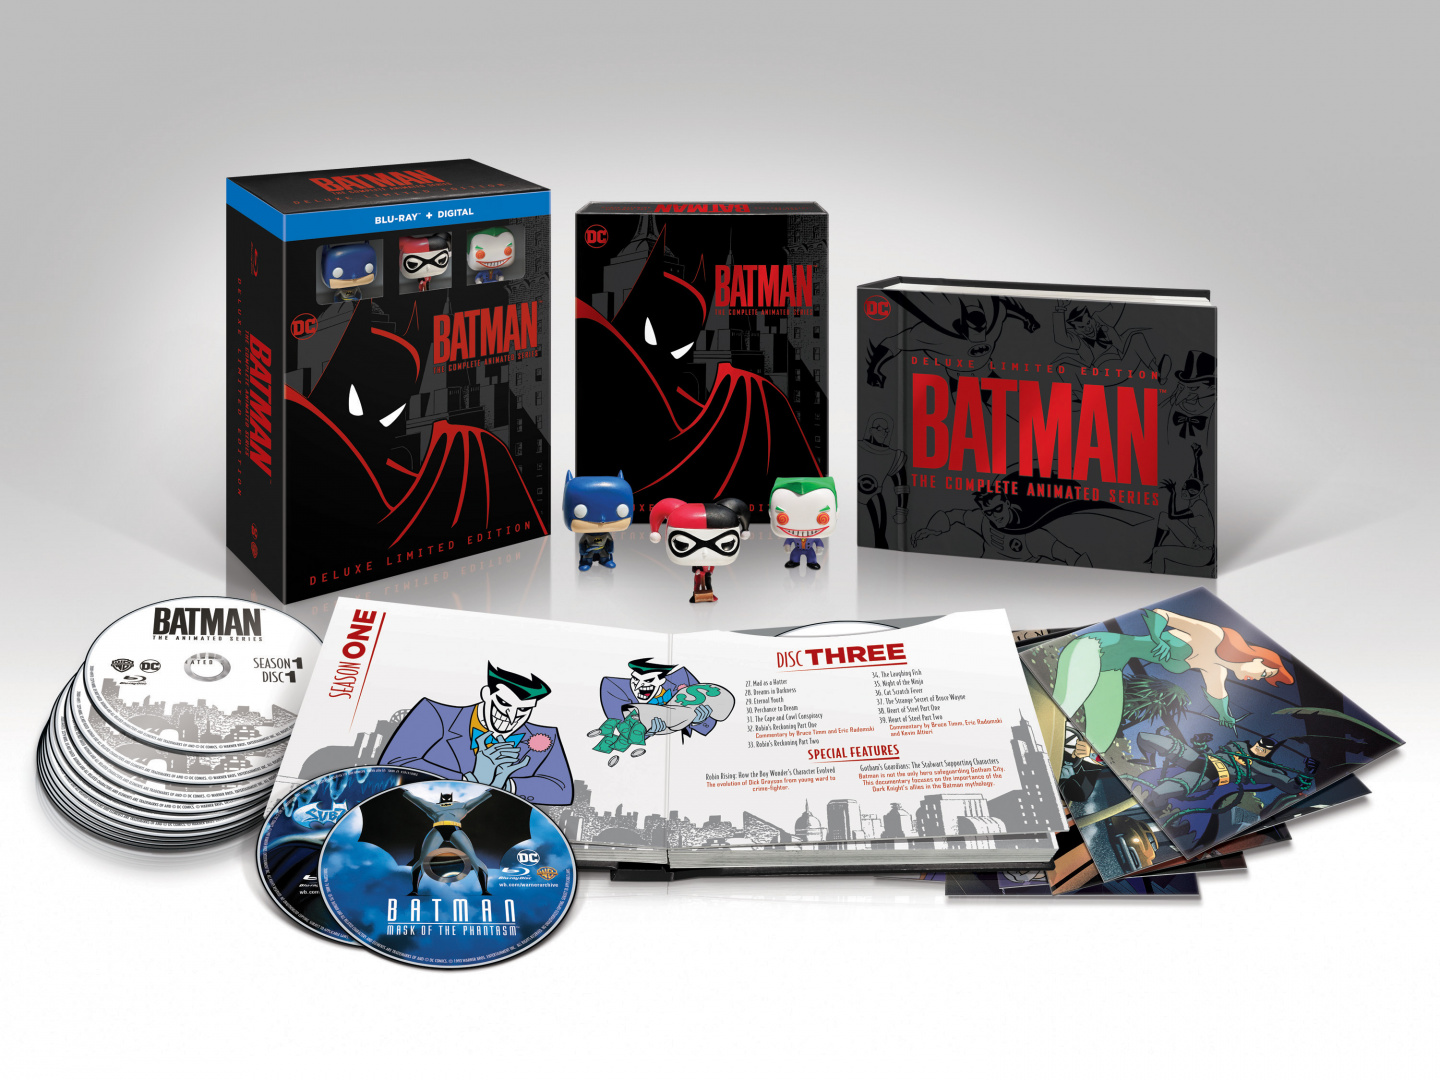 Batman: The Complete Animated Series Deluxe Edition Thumbnail